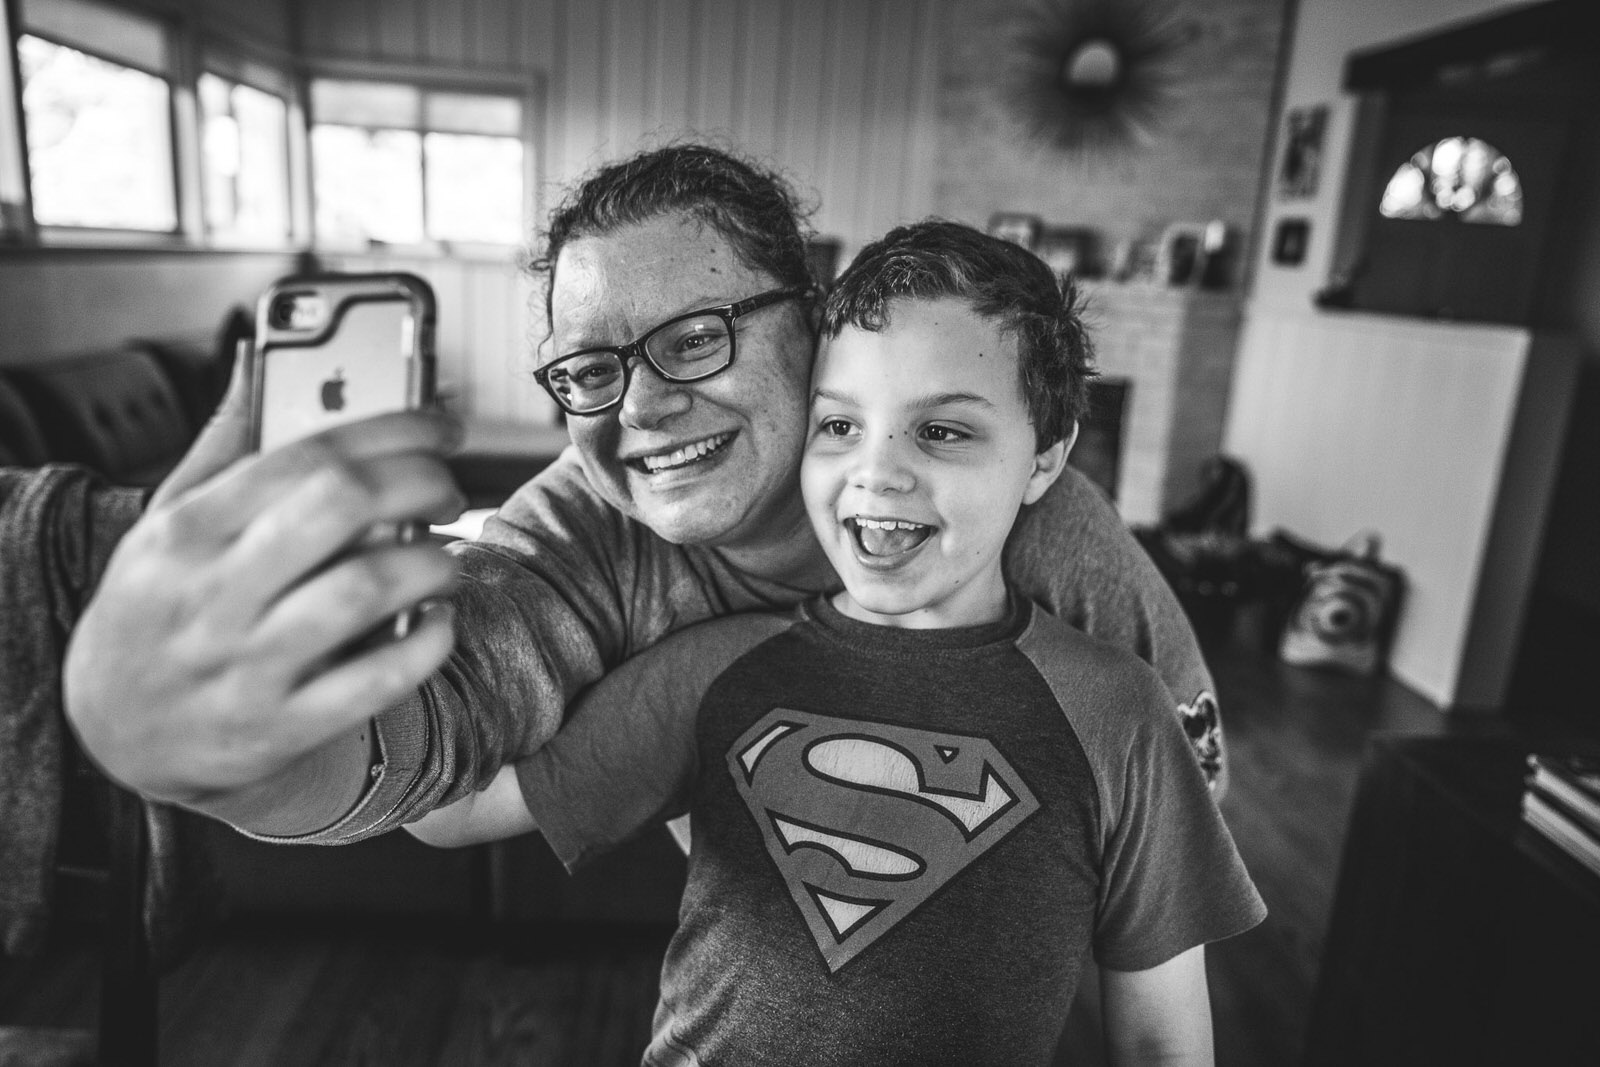 Photo by Sam Hines of Lisa Winner taking a selfie with her son